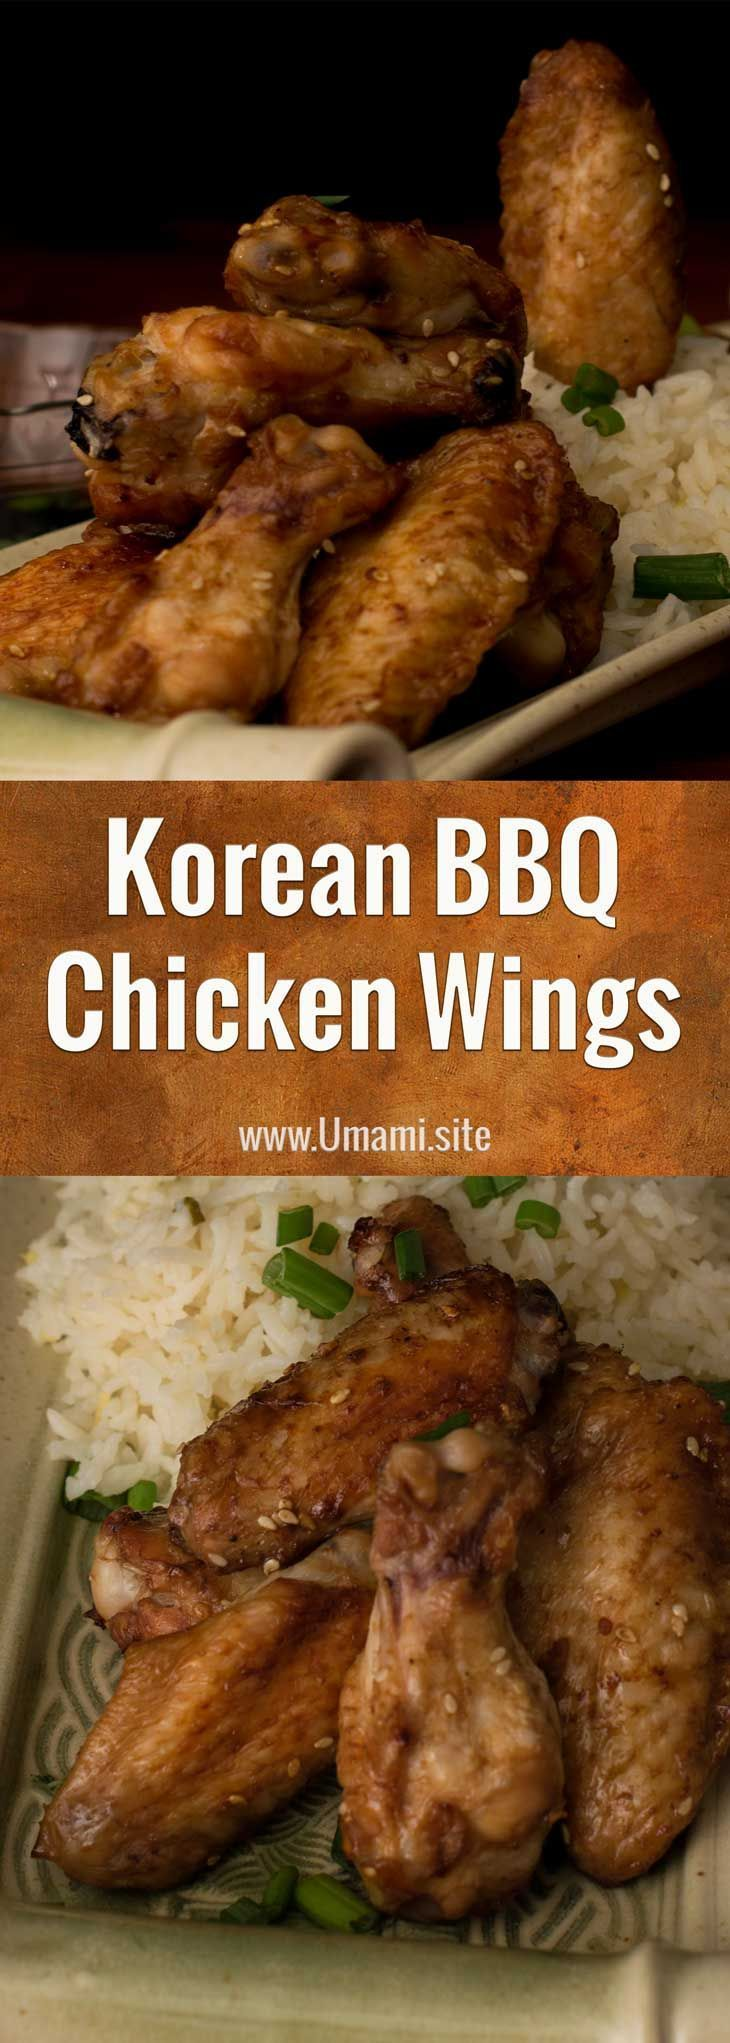 This #Korean #BBQ #chicken wing recipe is full of #ginger, #garlic, and the deep #umami flavors that make Korean BBQ so delicious. These chicken wings only take a few minutes to prep, making this recipe perfect as a main course, party food, or late night snack. #recipes #koreanfoodrecipes #chickenfoodrecipes